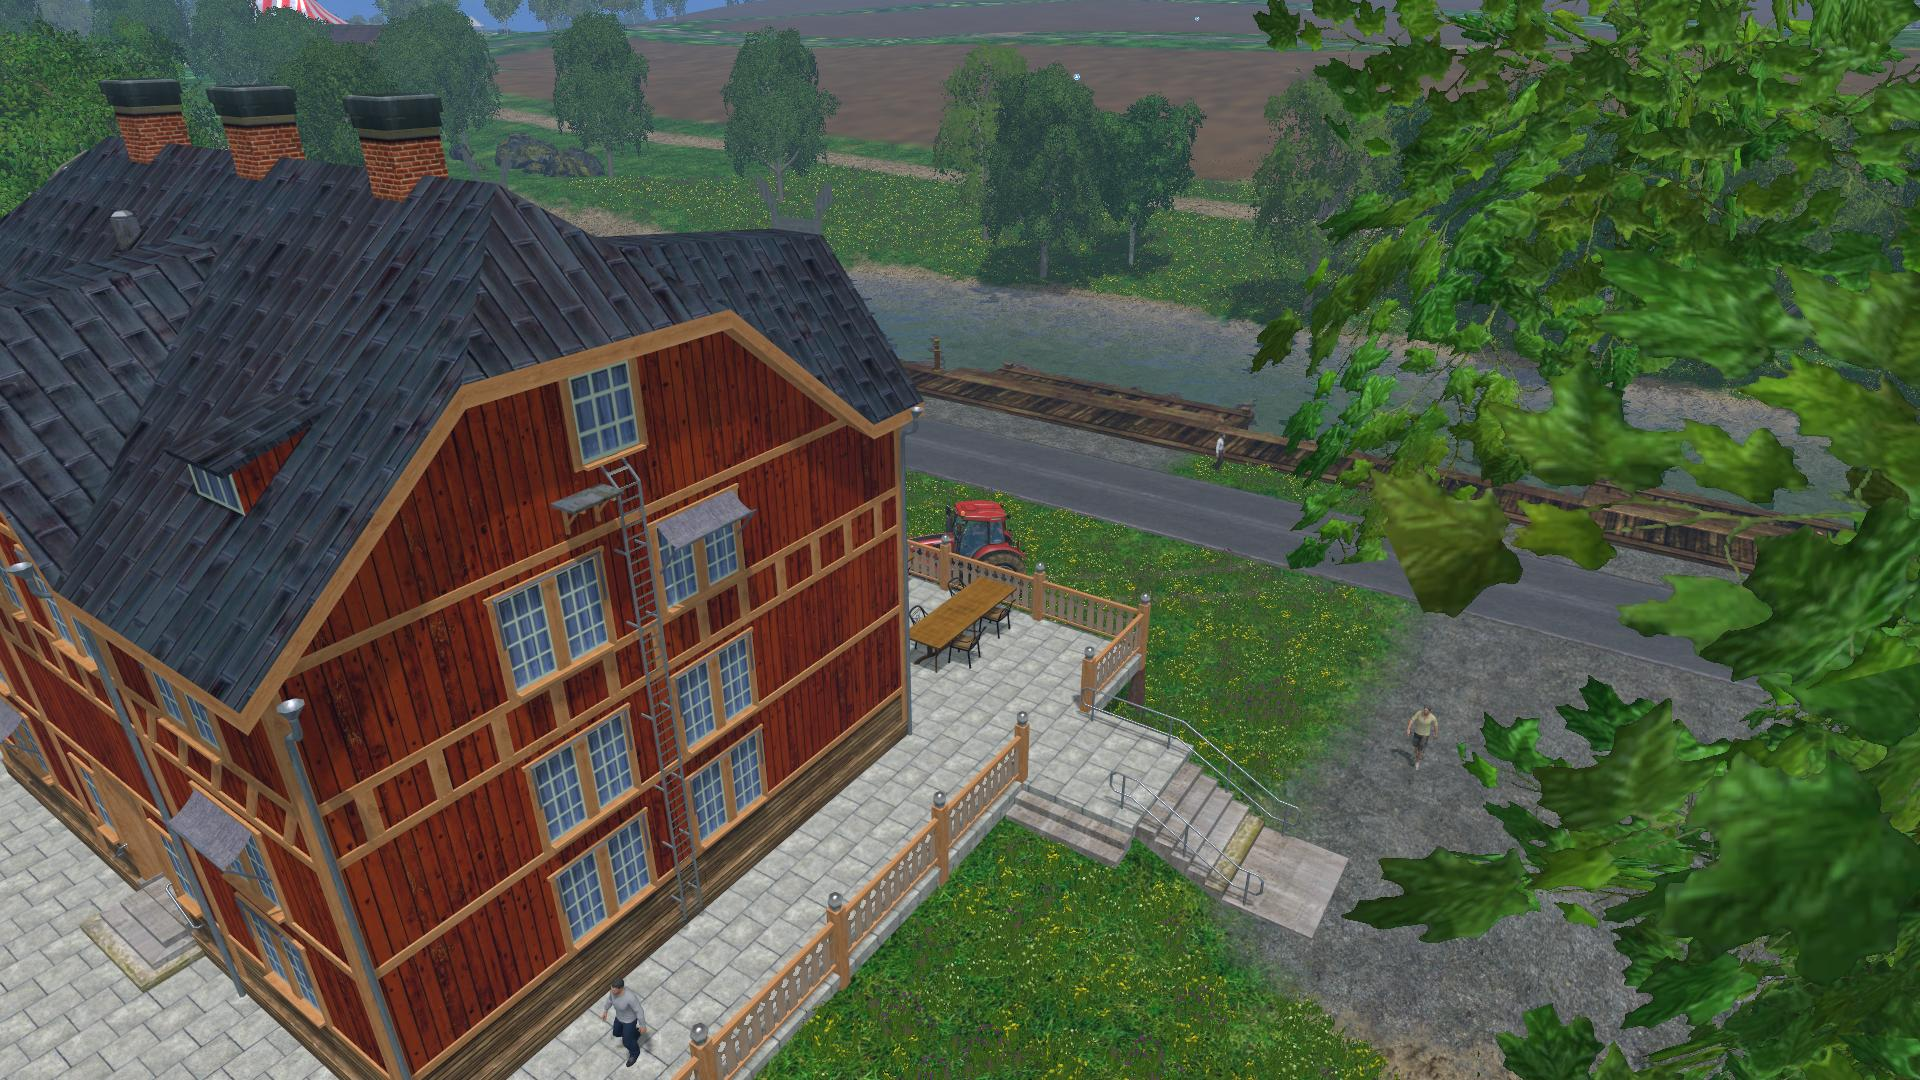 FarmingSimulator2015Game 2014 11 12 01 36 12 92 Farming Simulator 2015 HD Textures Pack v 2.0